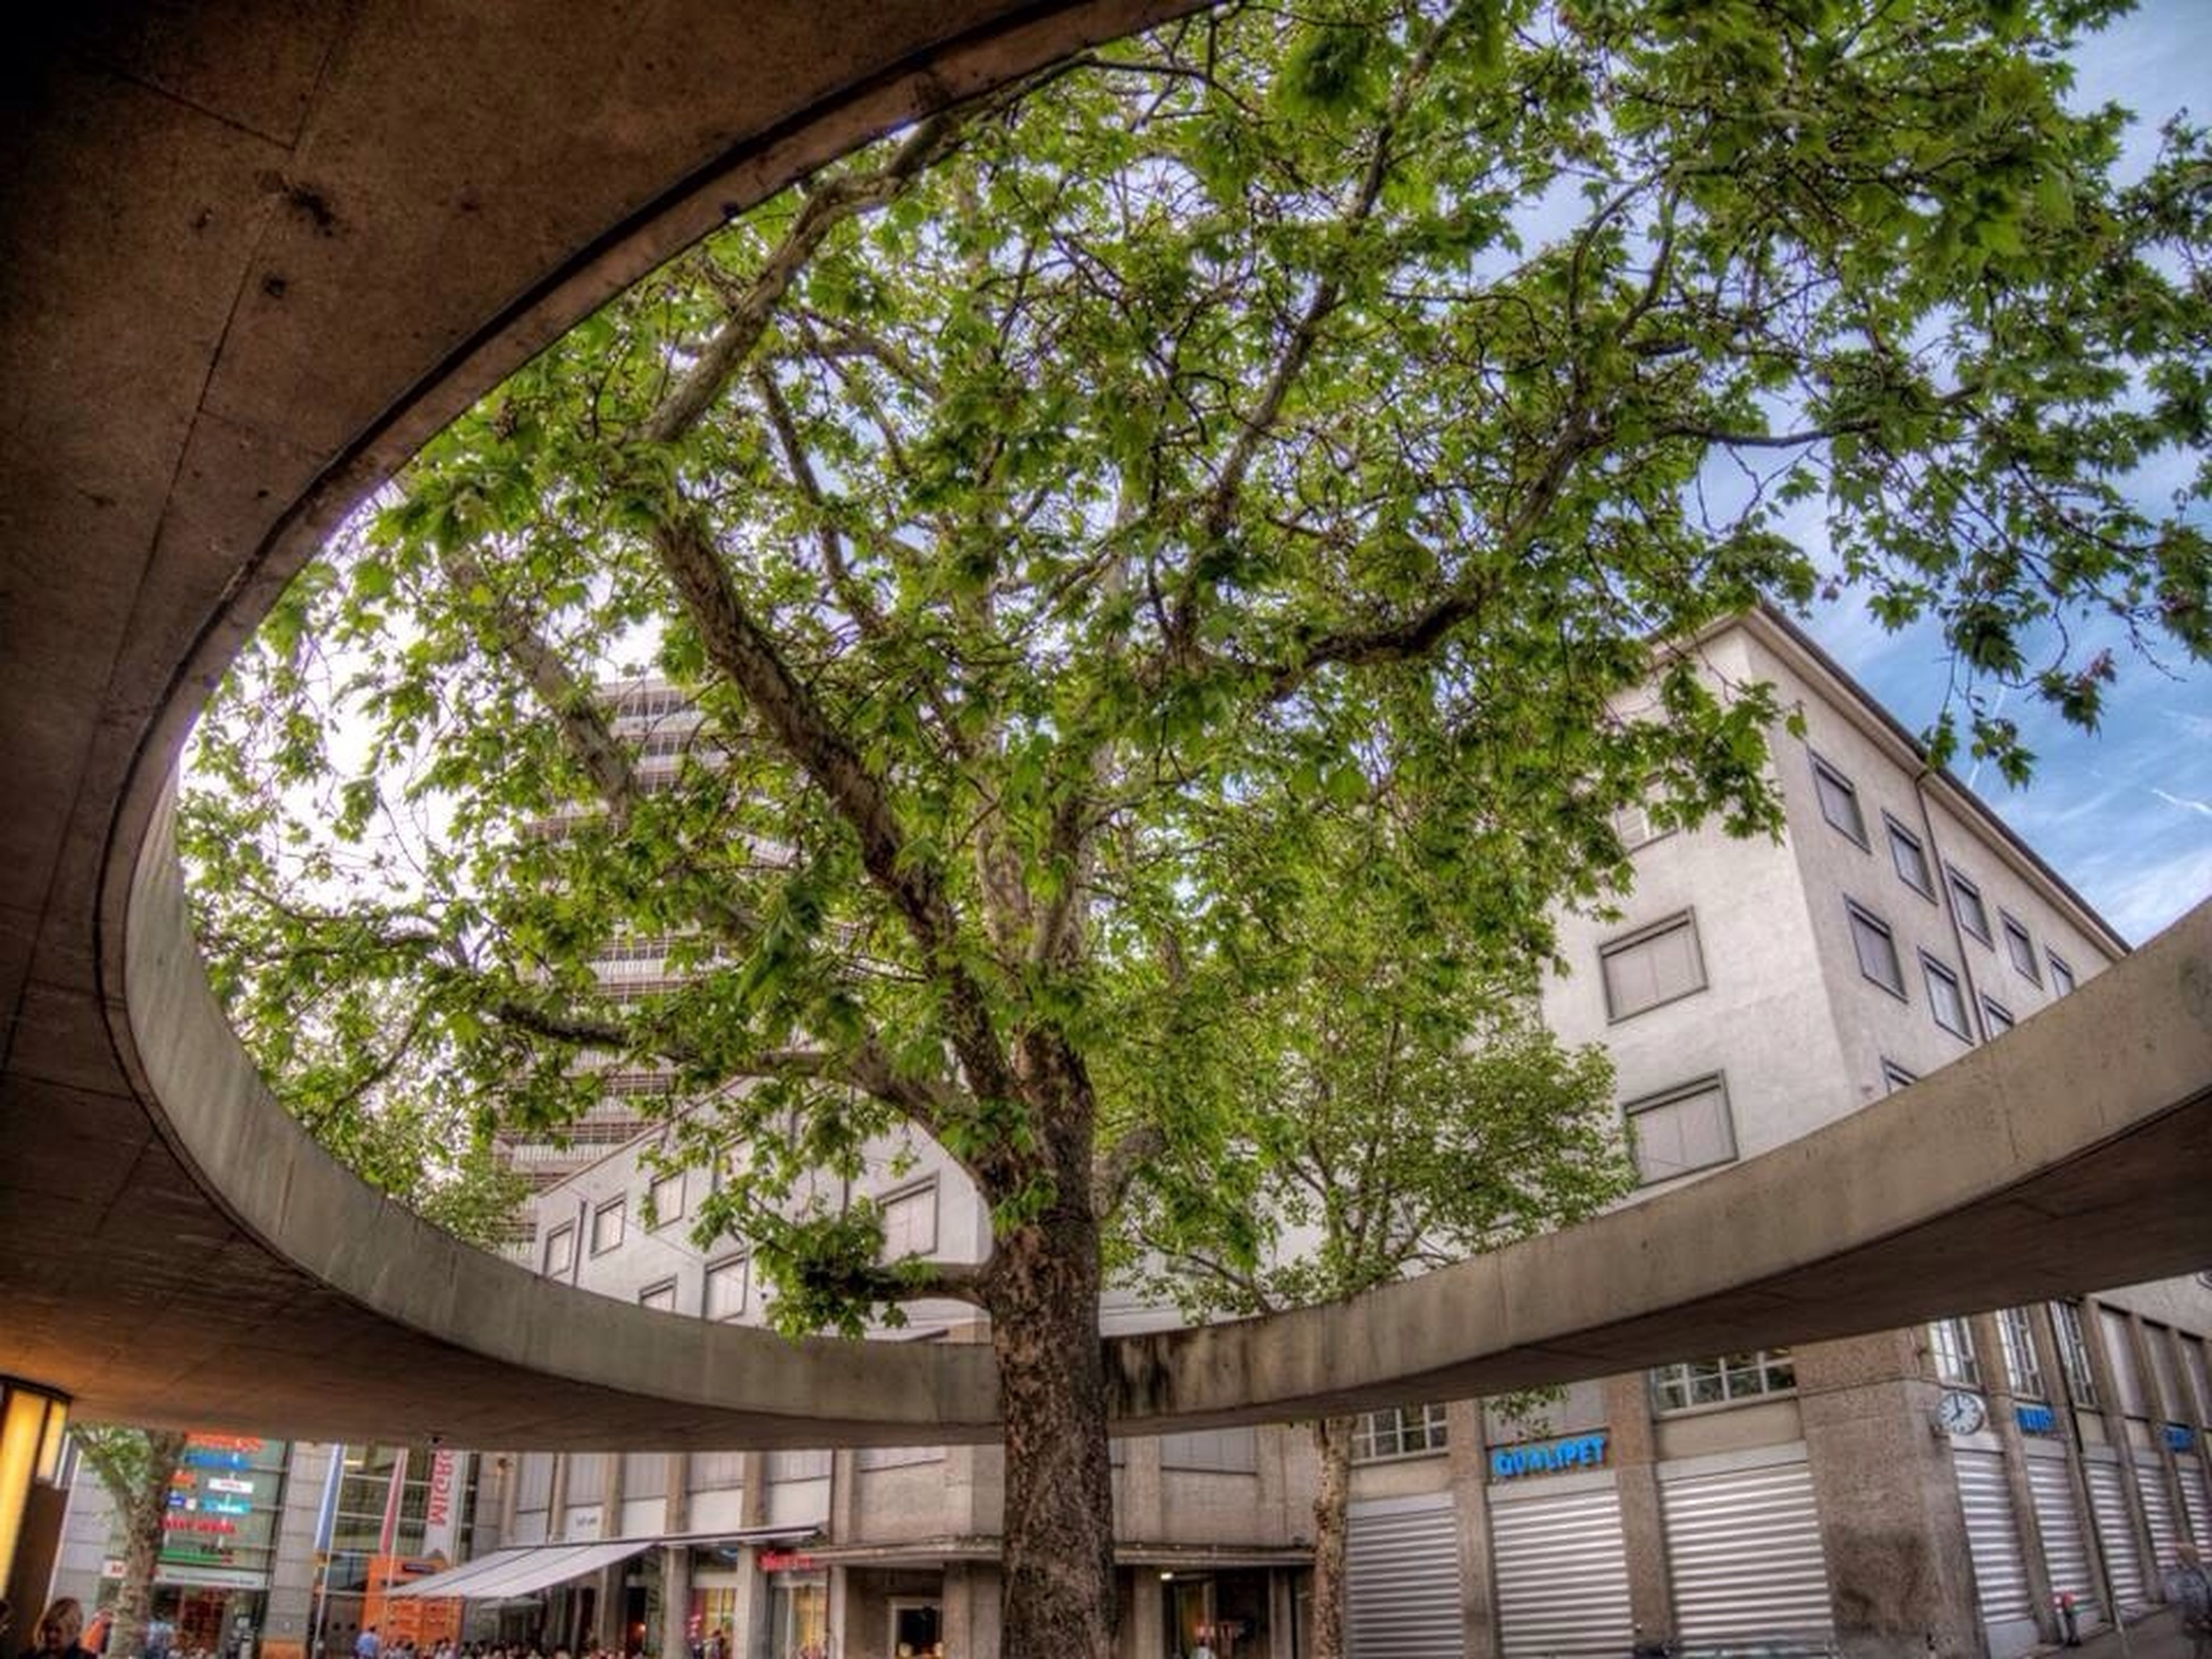 architecture, built structure, tree, building exterior, low angle view, residential structure, sky, house, residential building, building, day, city, railing, balcony, no people, growth, outdoors, sunlight, branch, arch